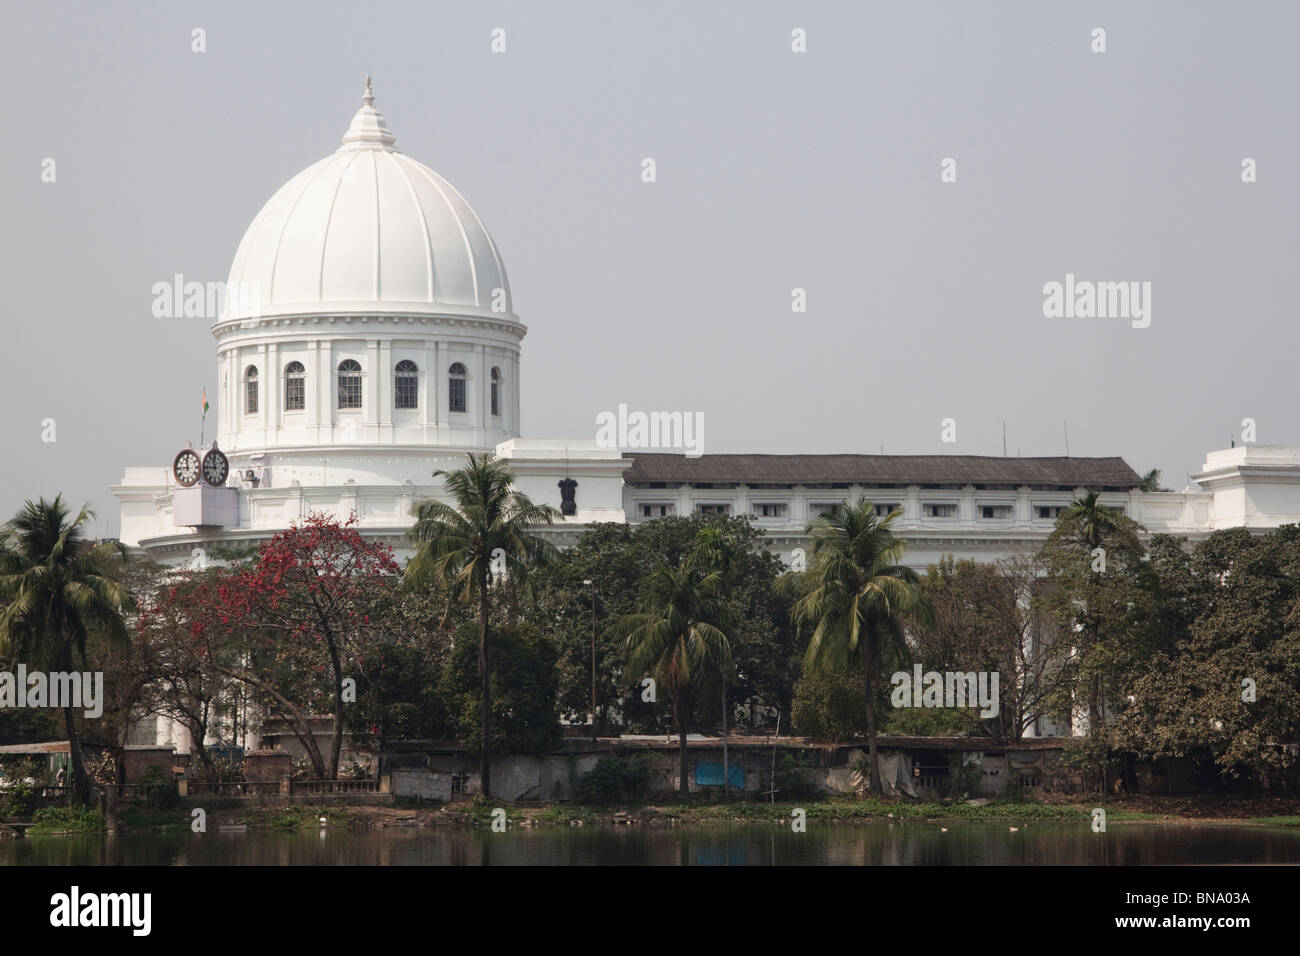 The GPO (General Post Office) building in Kolkata (Calcutta), West Bengal, India. - Stock Image